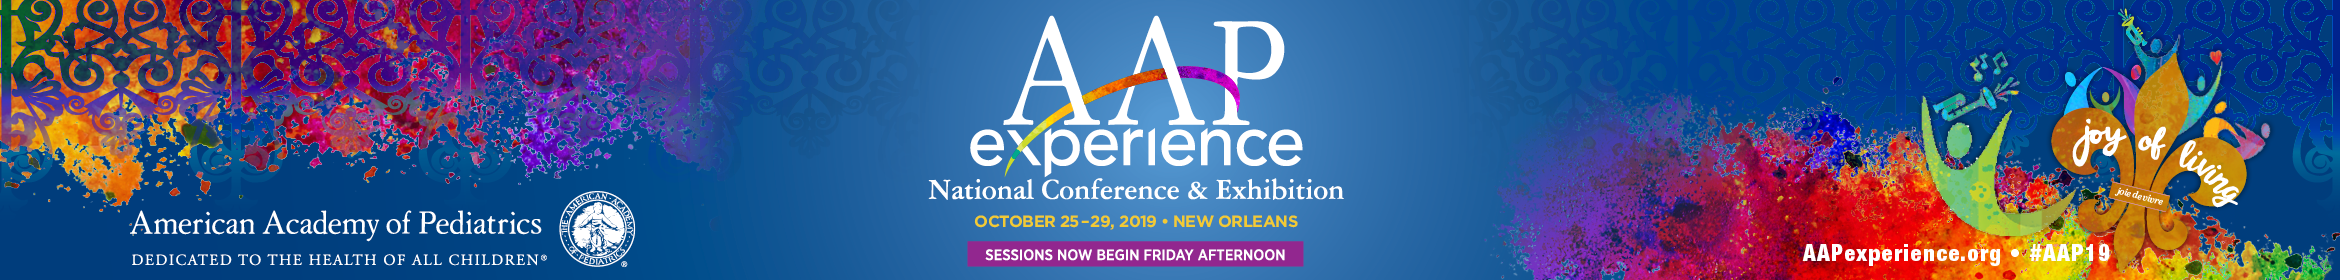 2019 AAP National Conference & Exhibition Main banner